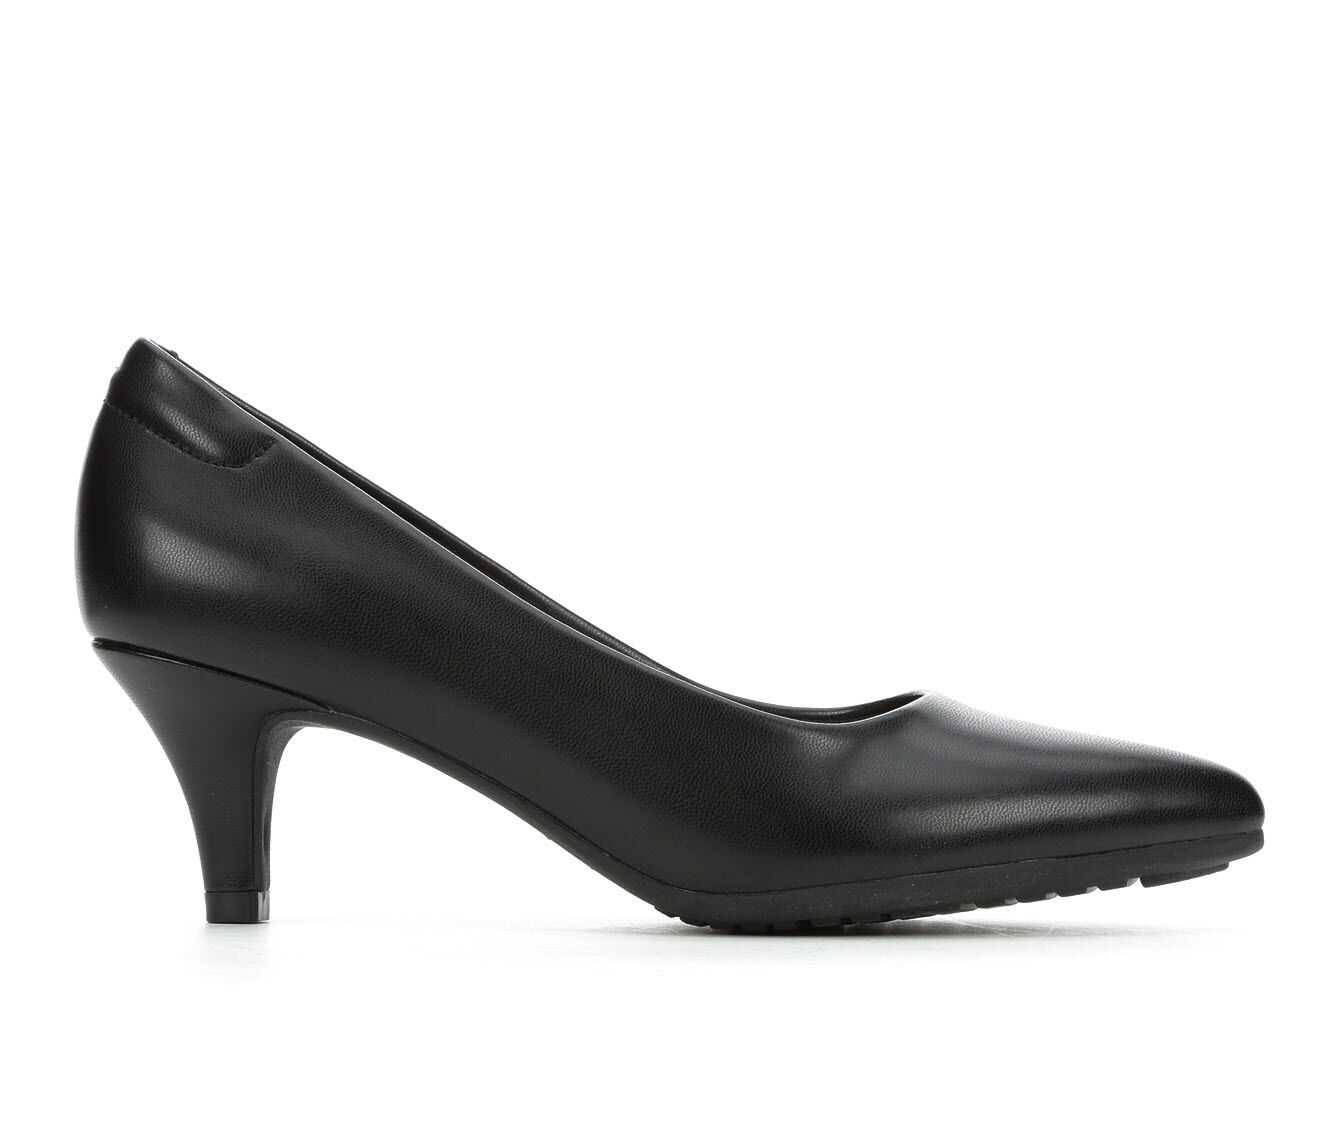 Women's Andiamo Brenda Pumps Black